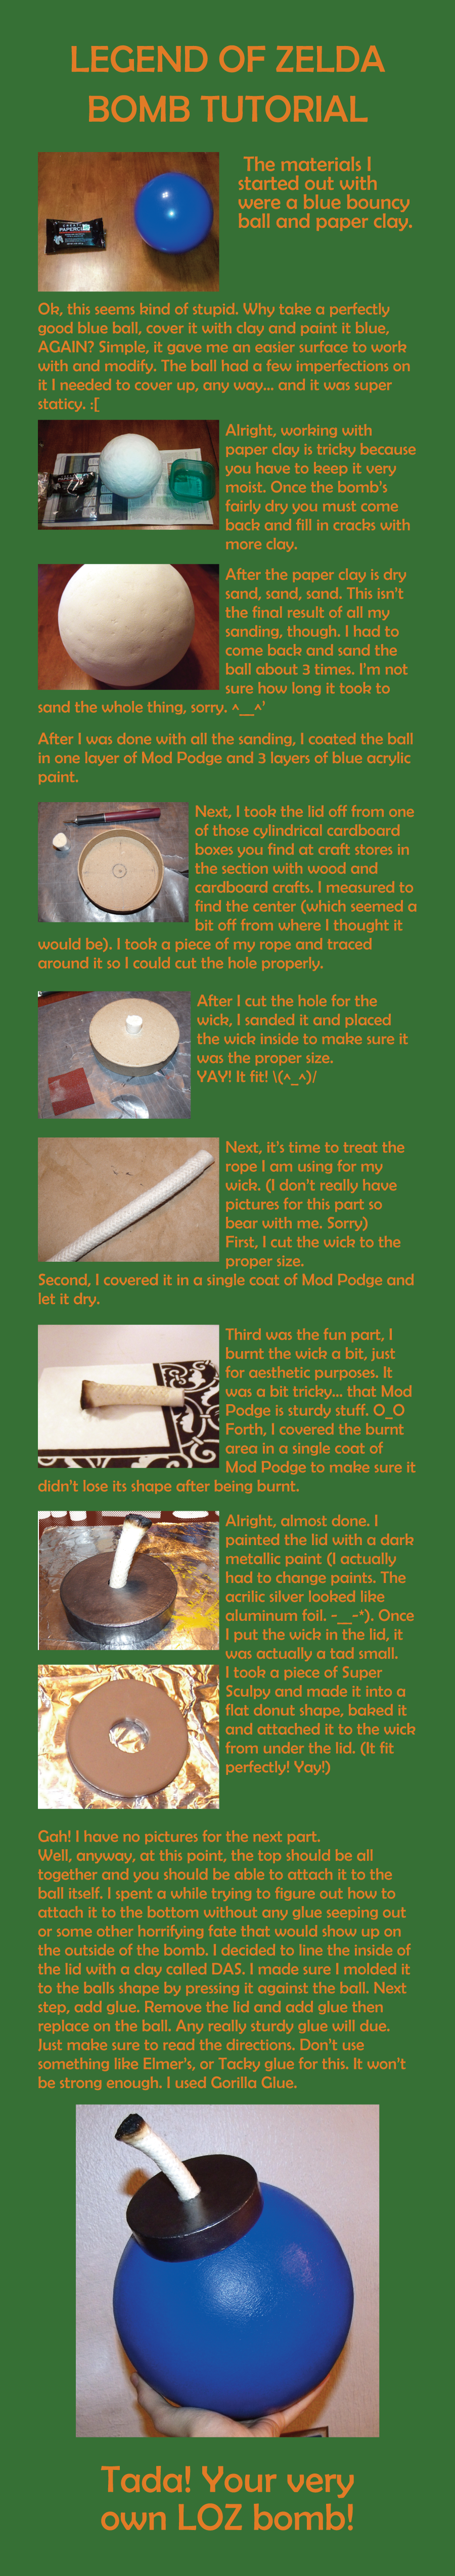 Loz bomb tutorial by vp land of laiantart on deviantart loz bomb tutorial by vp land of laiantart on link cosplaycosplay baditri Images